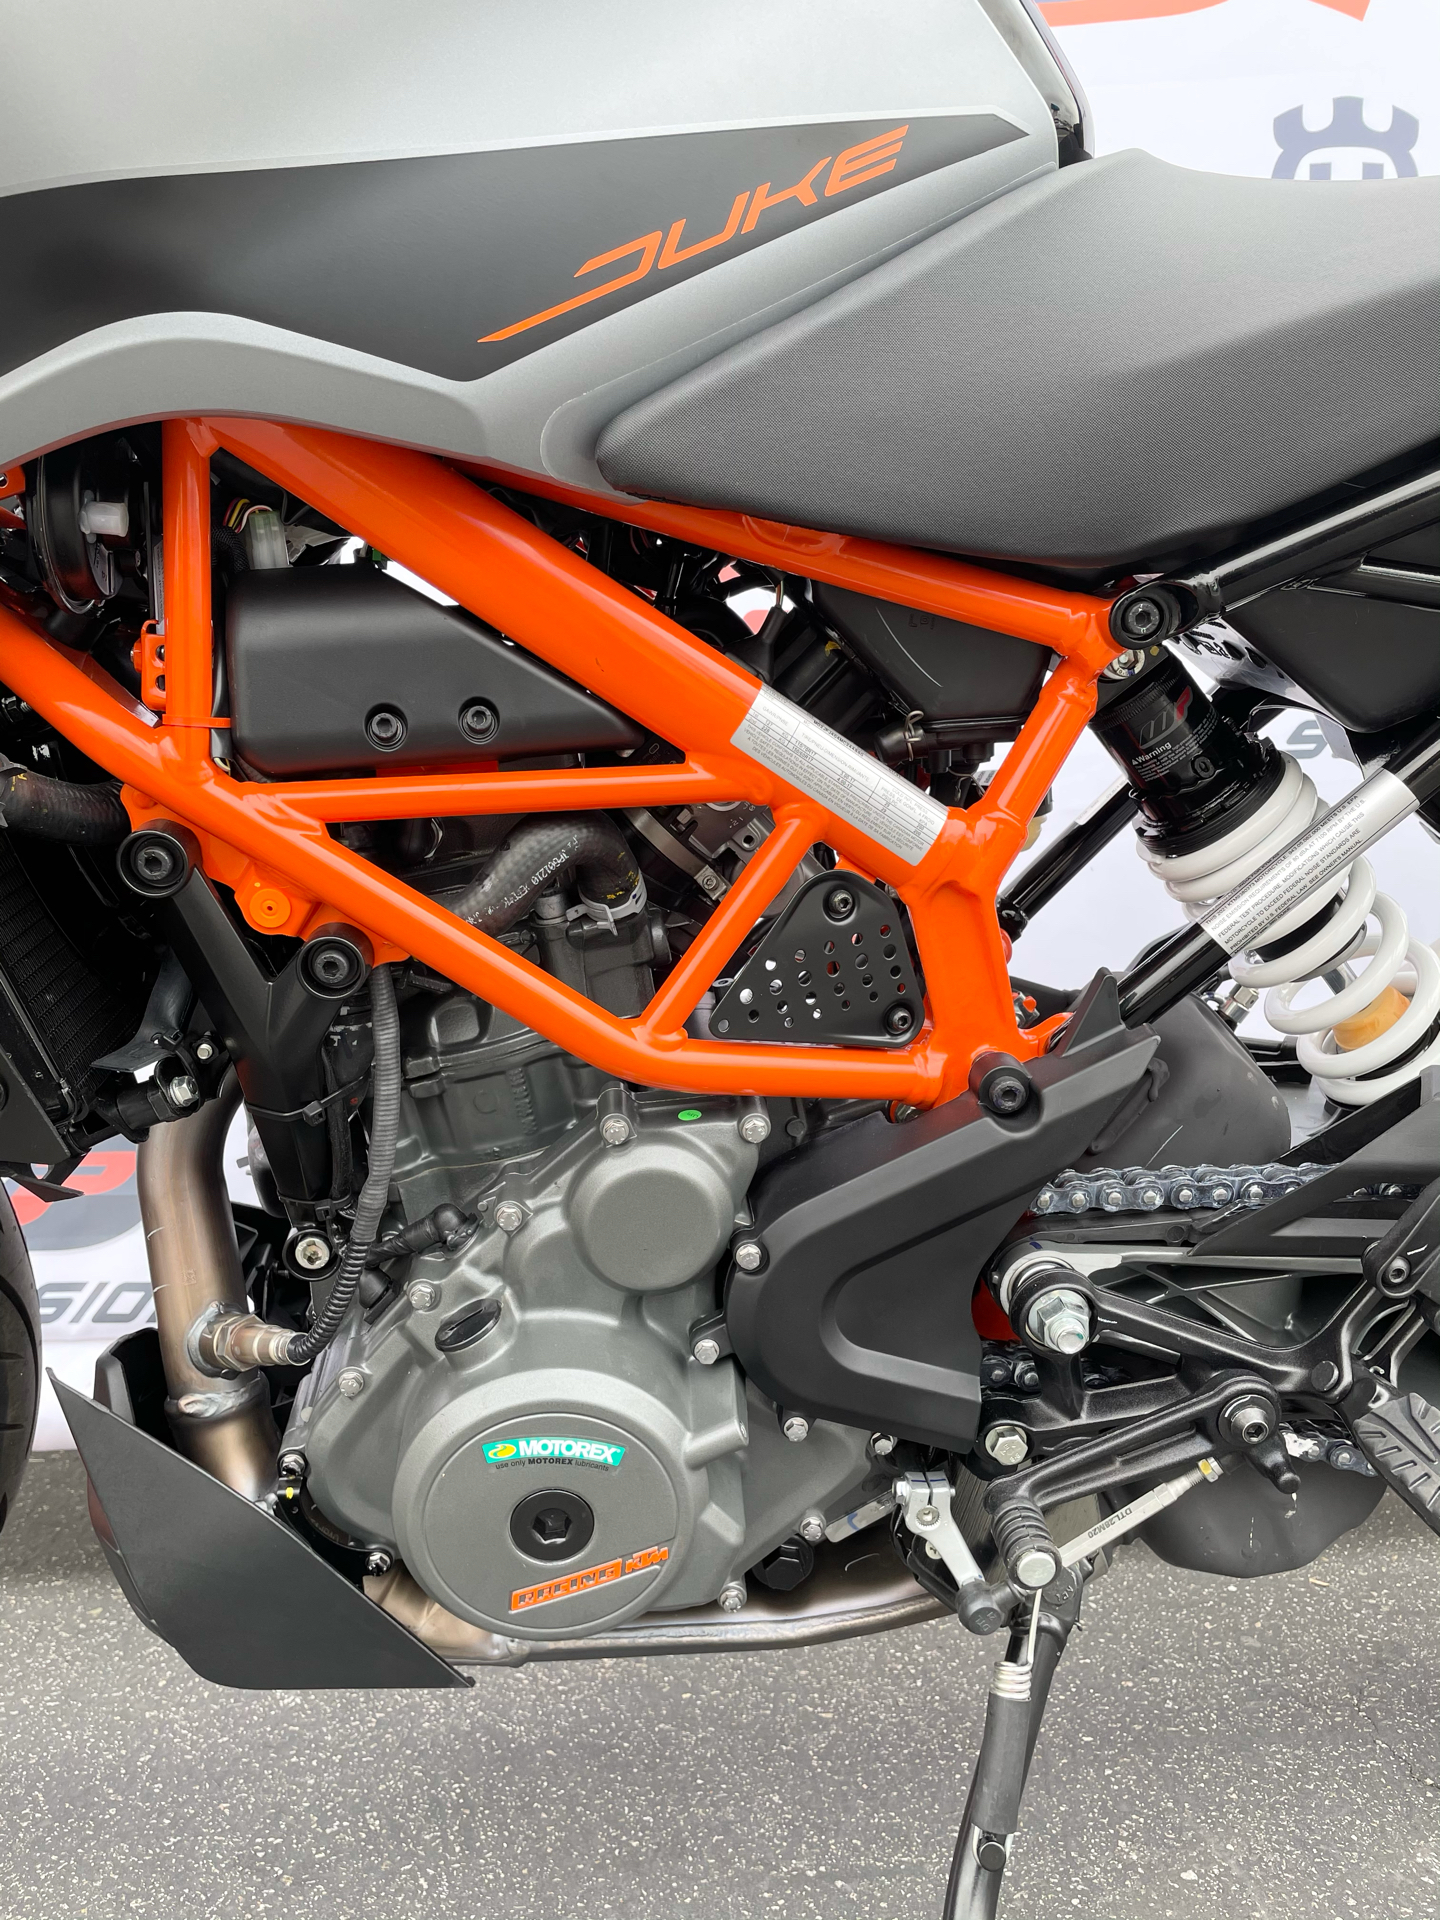 2021 KTM 390 Duke in Costa Mesa, California - Photo 4